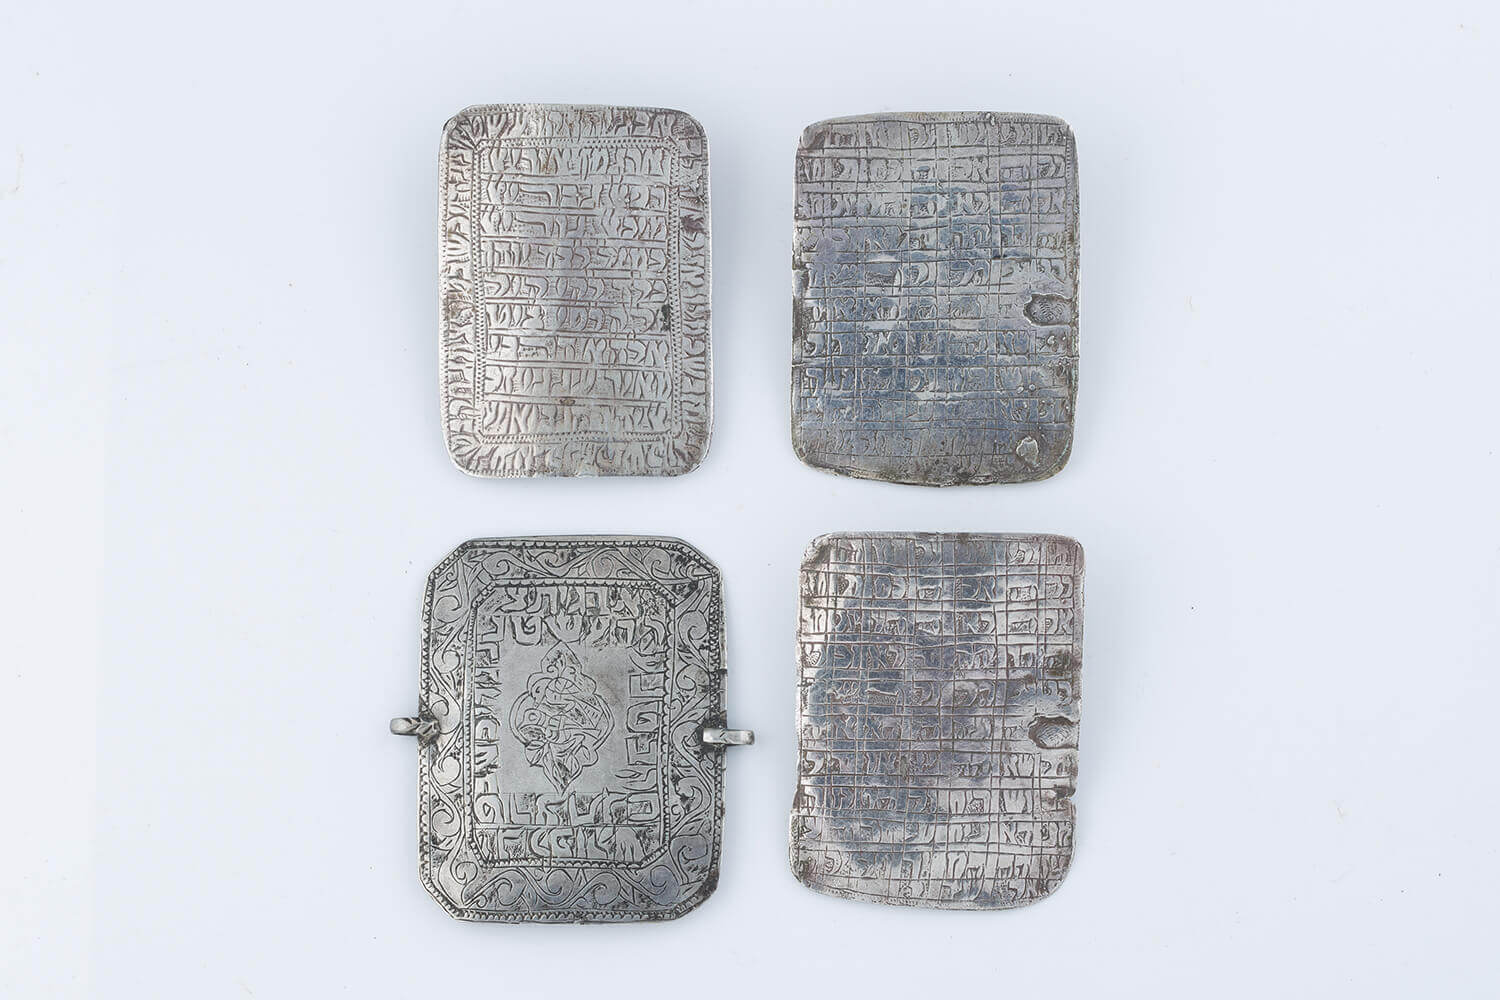 028. A GROUP OF FOUR SILVER SQUARE AMULETS